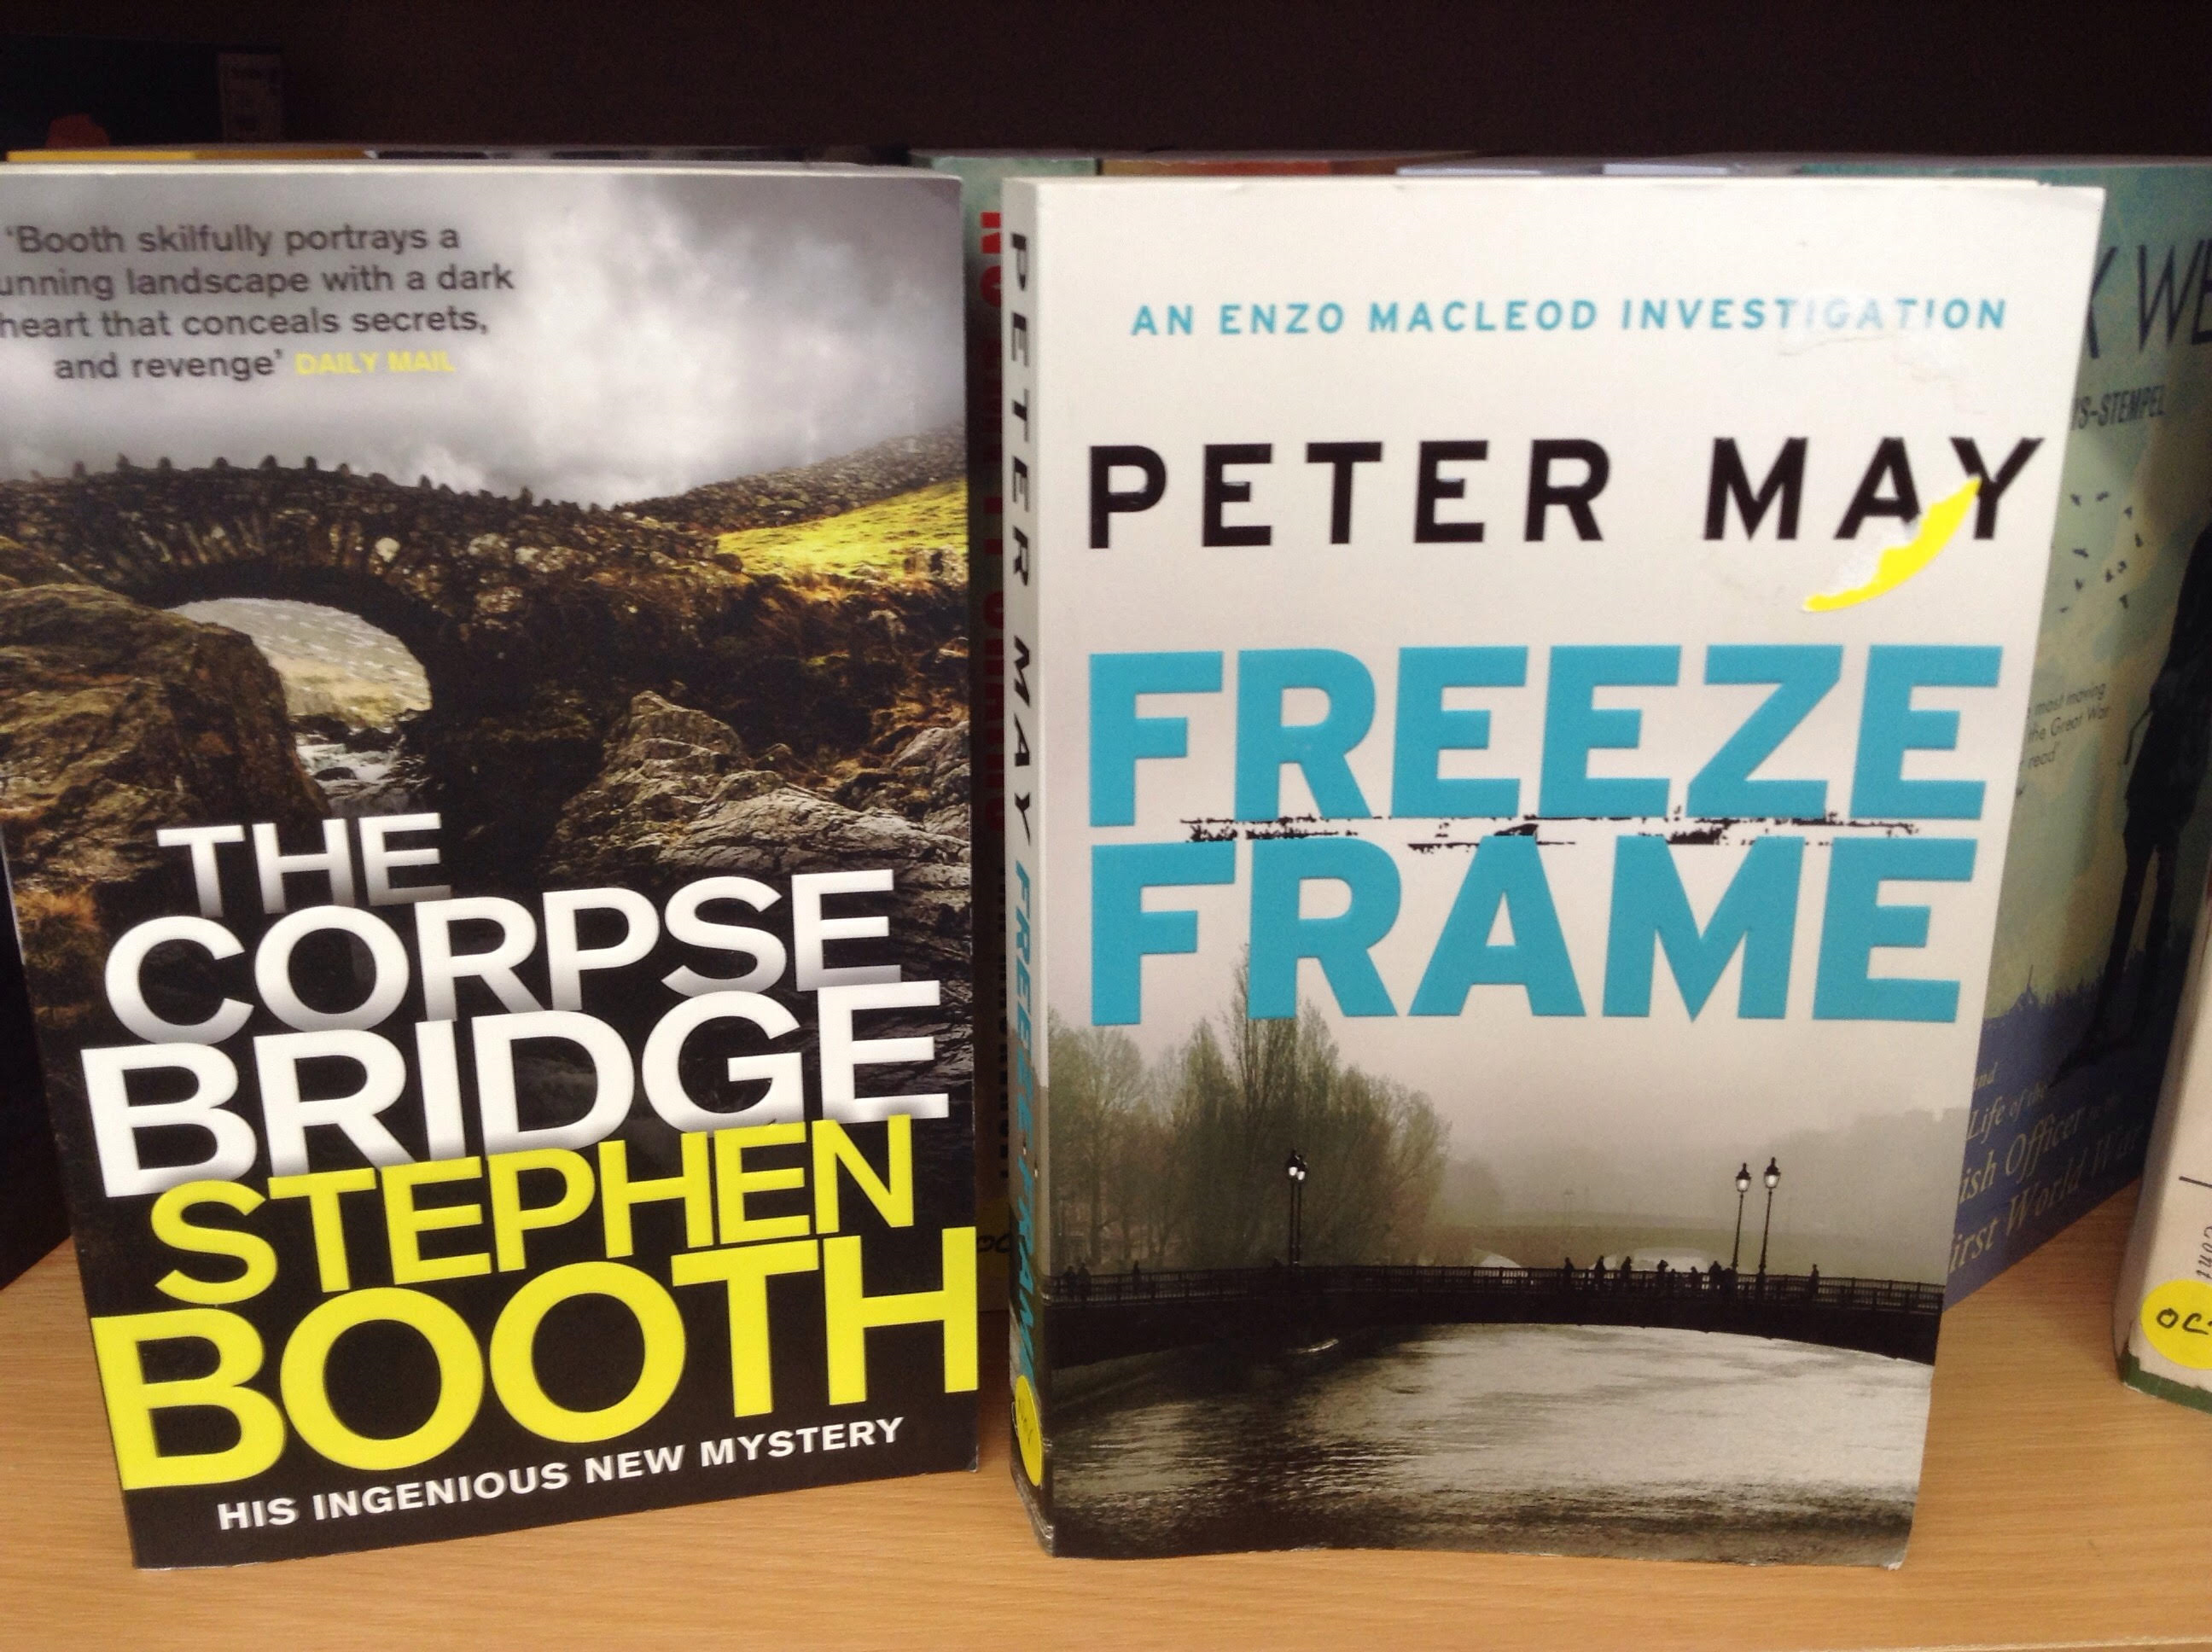 The Corpse bridge by Stephen Booth and Freeze Frame by Peter May ...